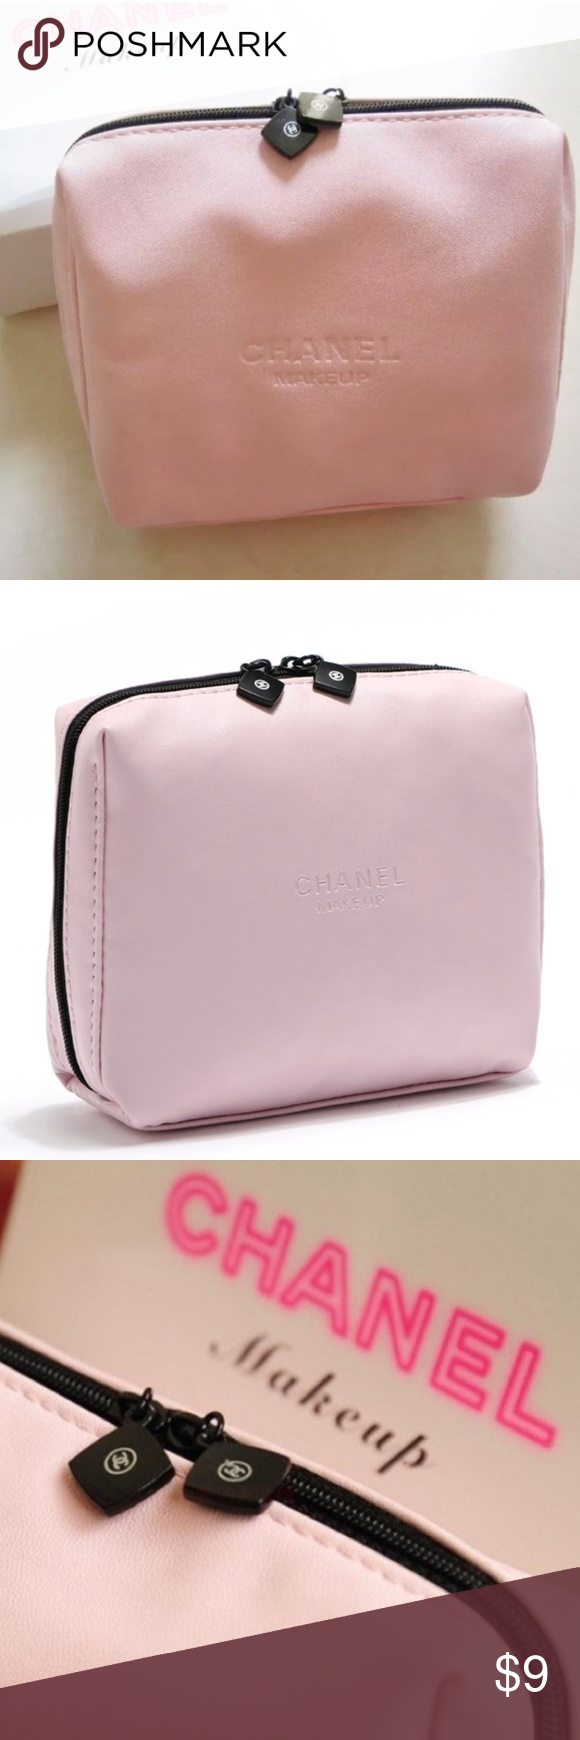 NEW CHANEL Pink Logo VIP Leather Makeup Case Bag LAST ONE